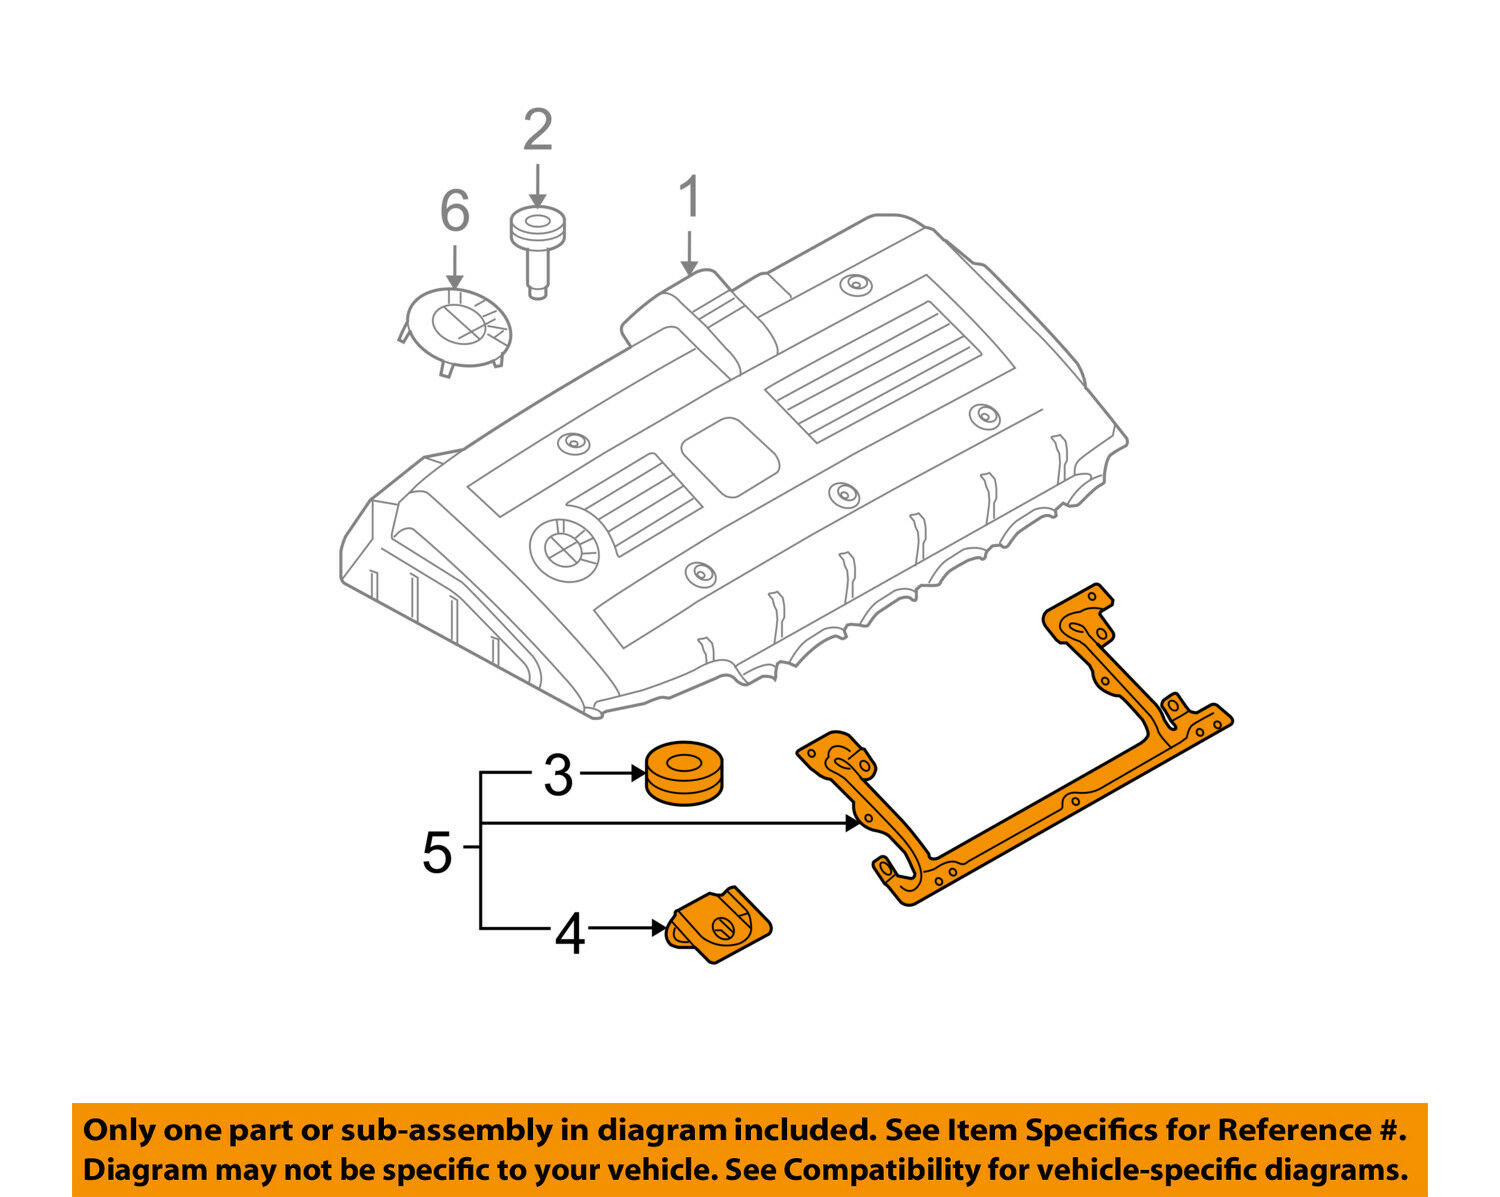 L6 Engine Diagram Wiring Data Schematic L33 Bmw Oem 06 08 Z4 3 0l Coil Cover Bracket 11127531558 Rh Picclick Com